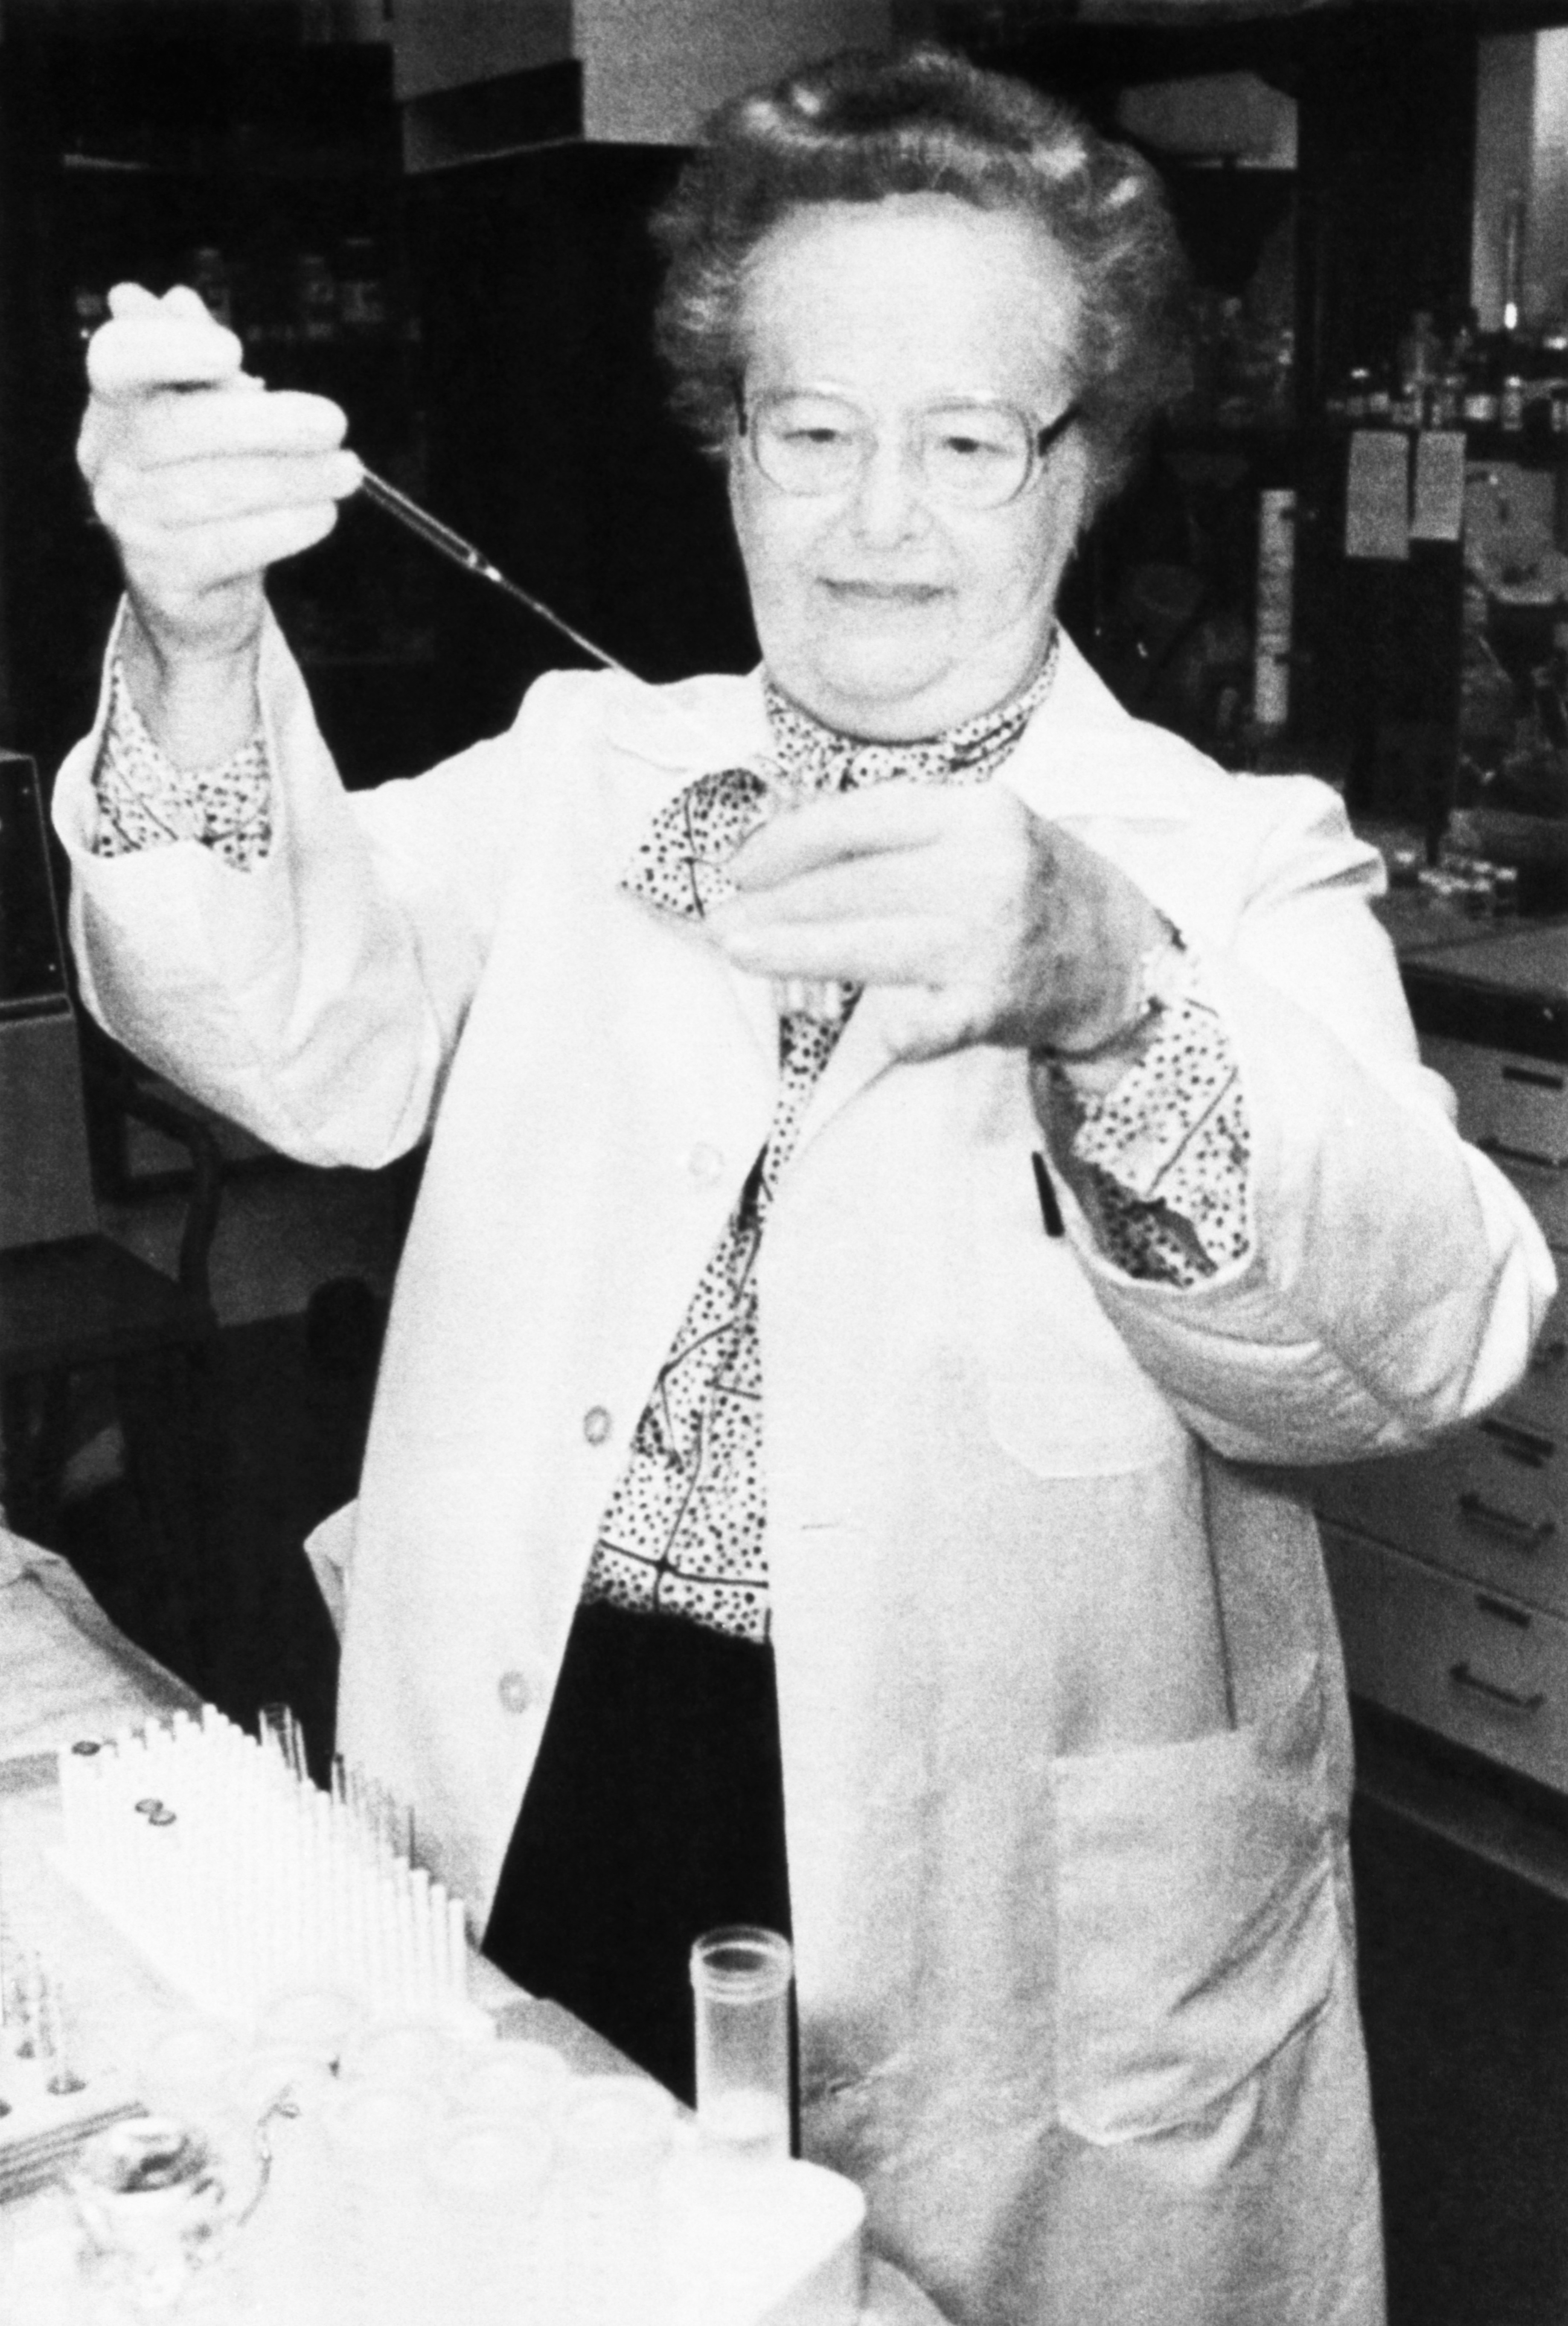 gertrude b elion Gertrude b elion, co-recipient of the nobel prize in medicine elion was a member of one of the greatest drug-discovery partnerships in the history of medicine.